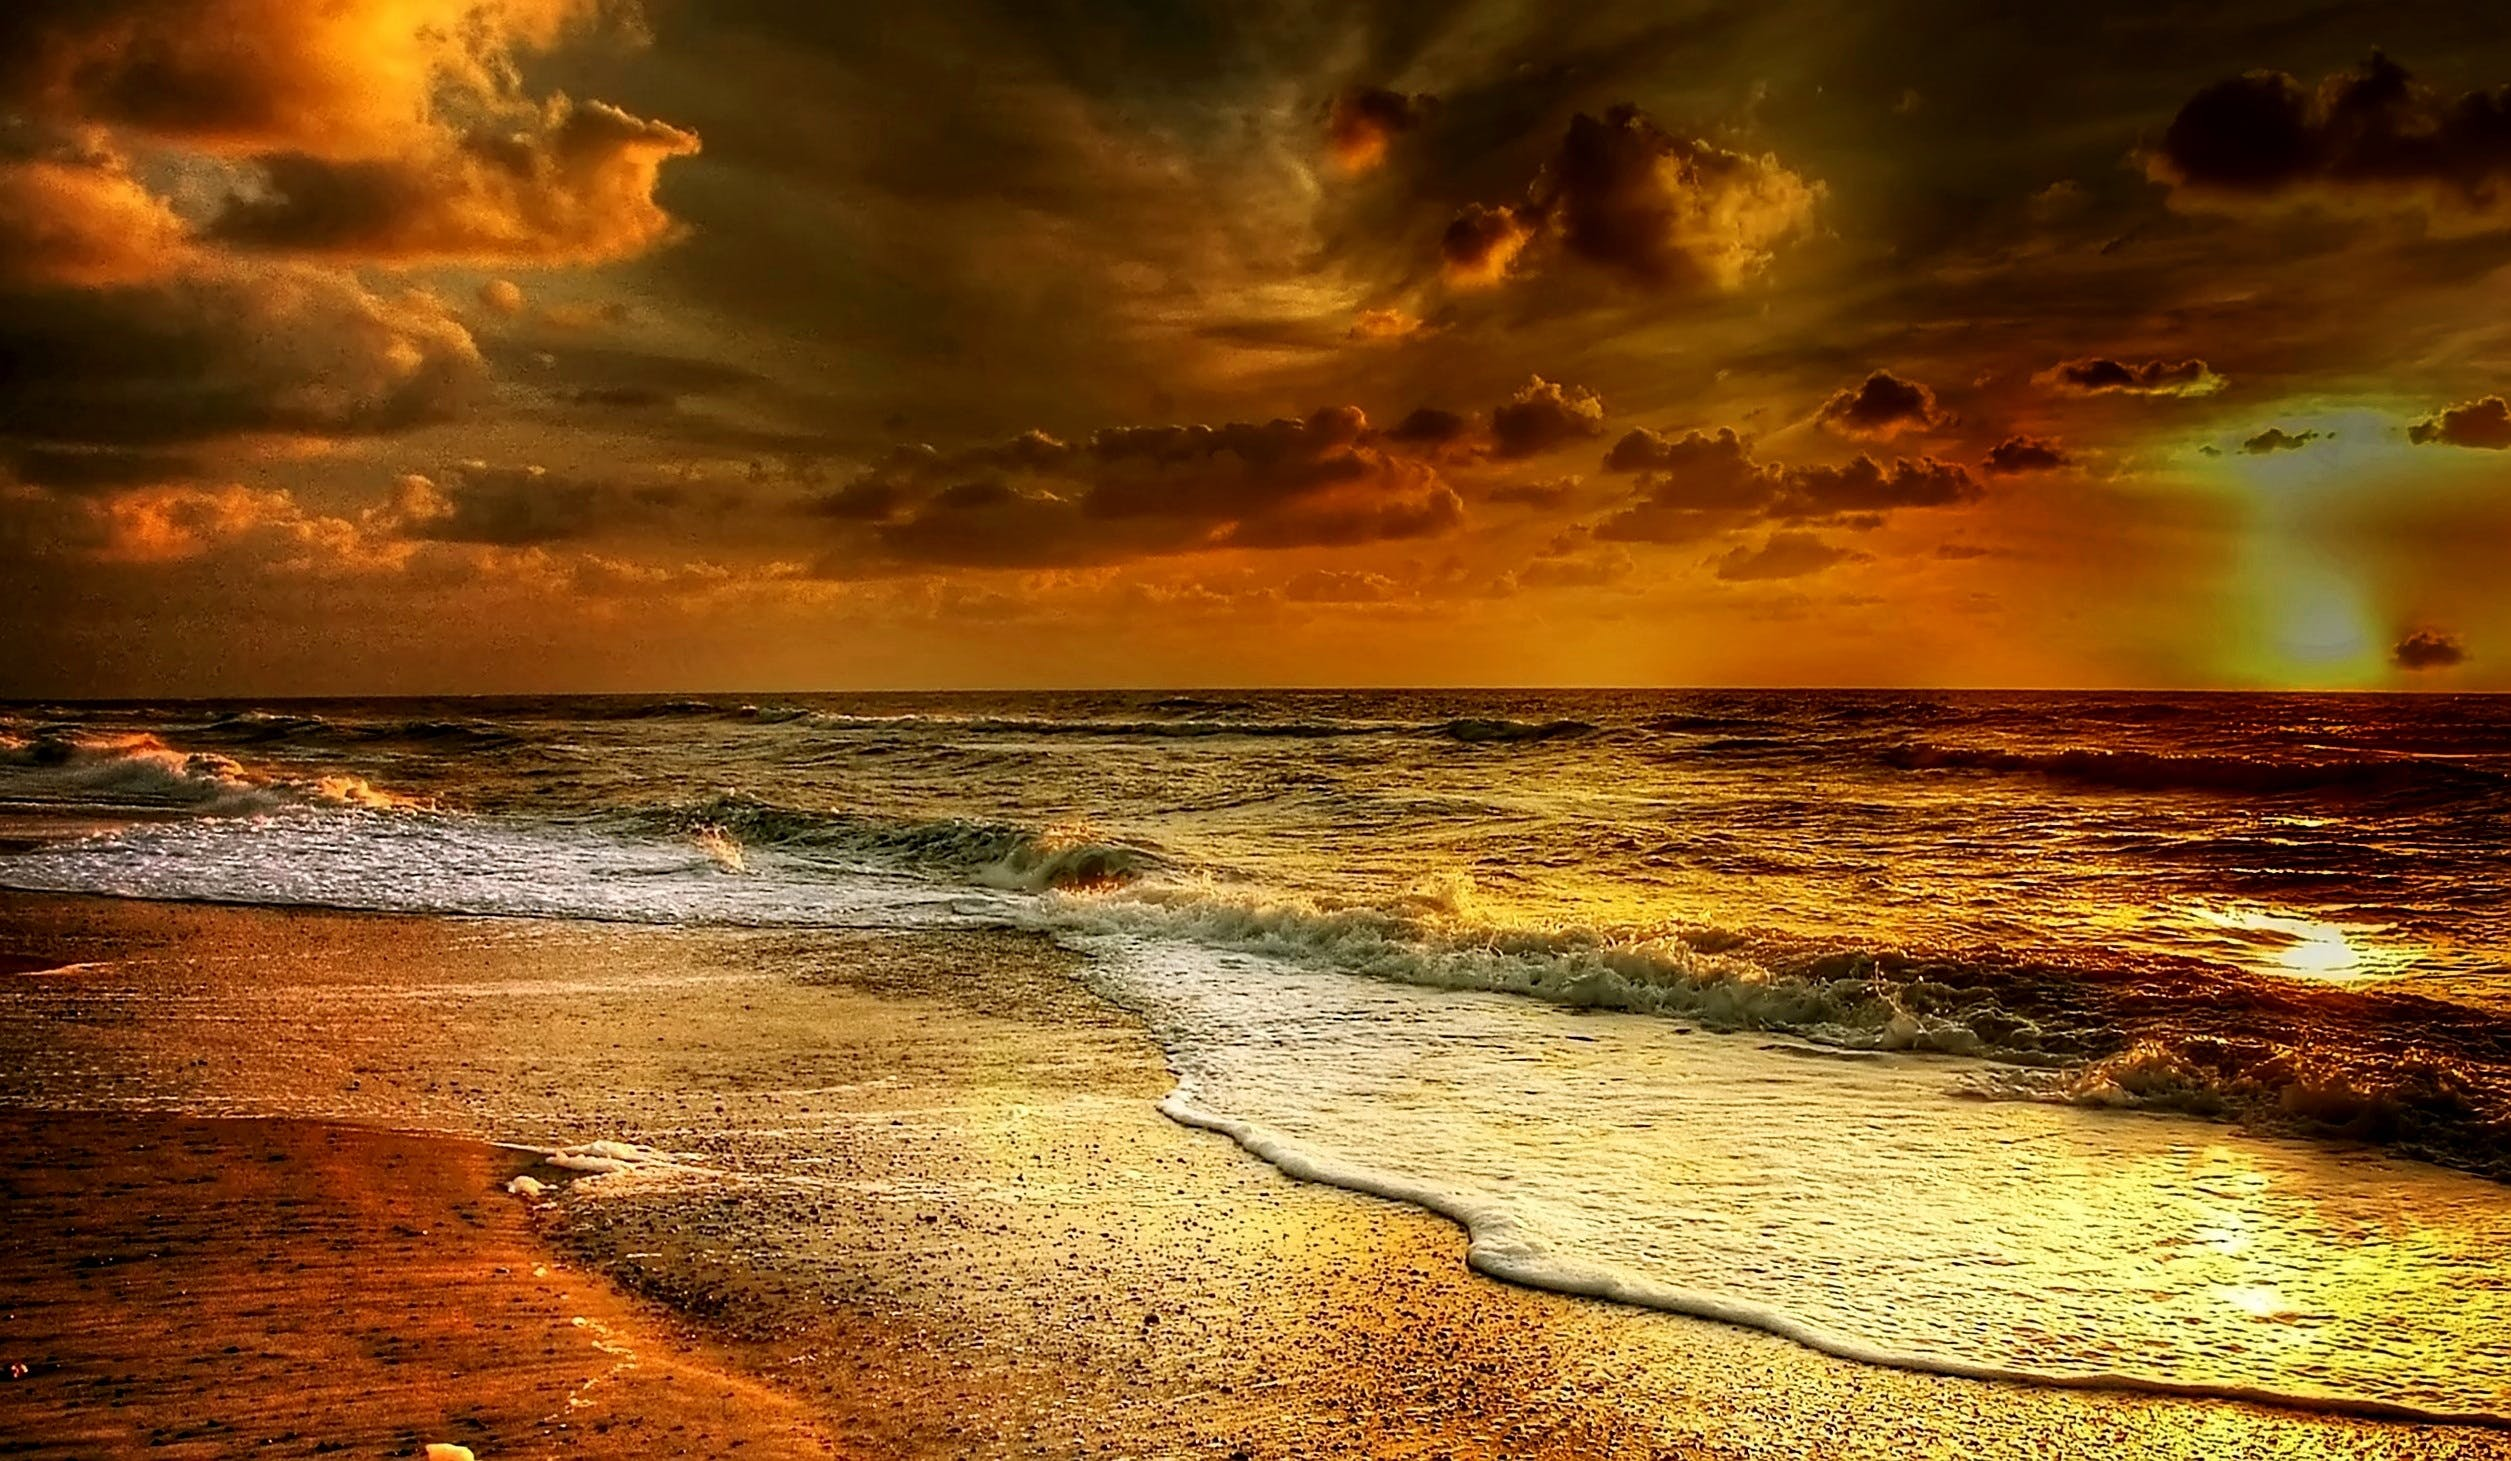 afterglow, atmosphere, beach